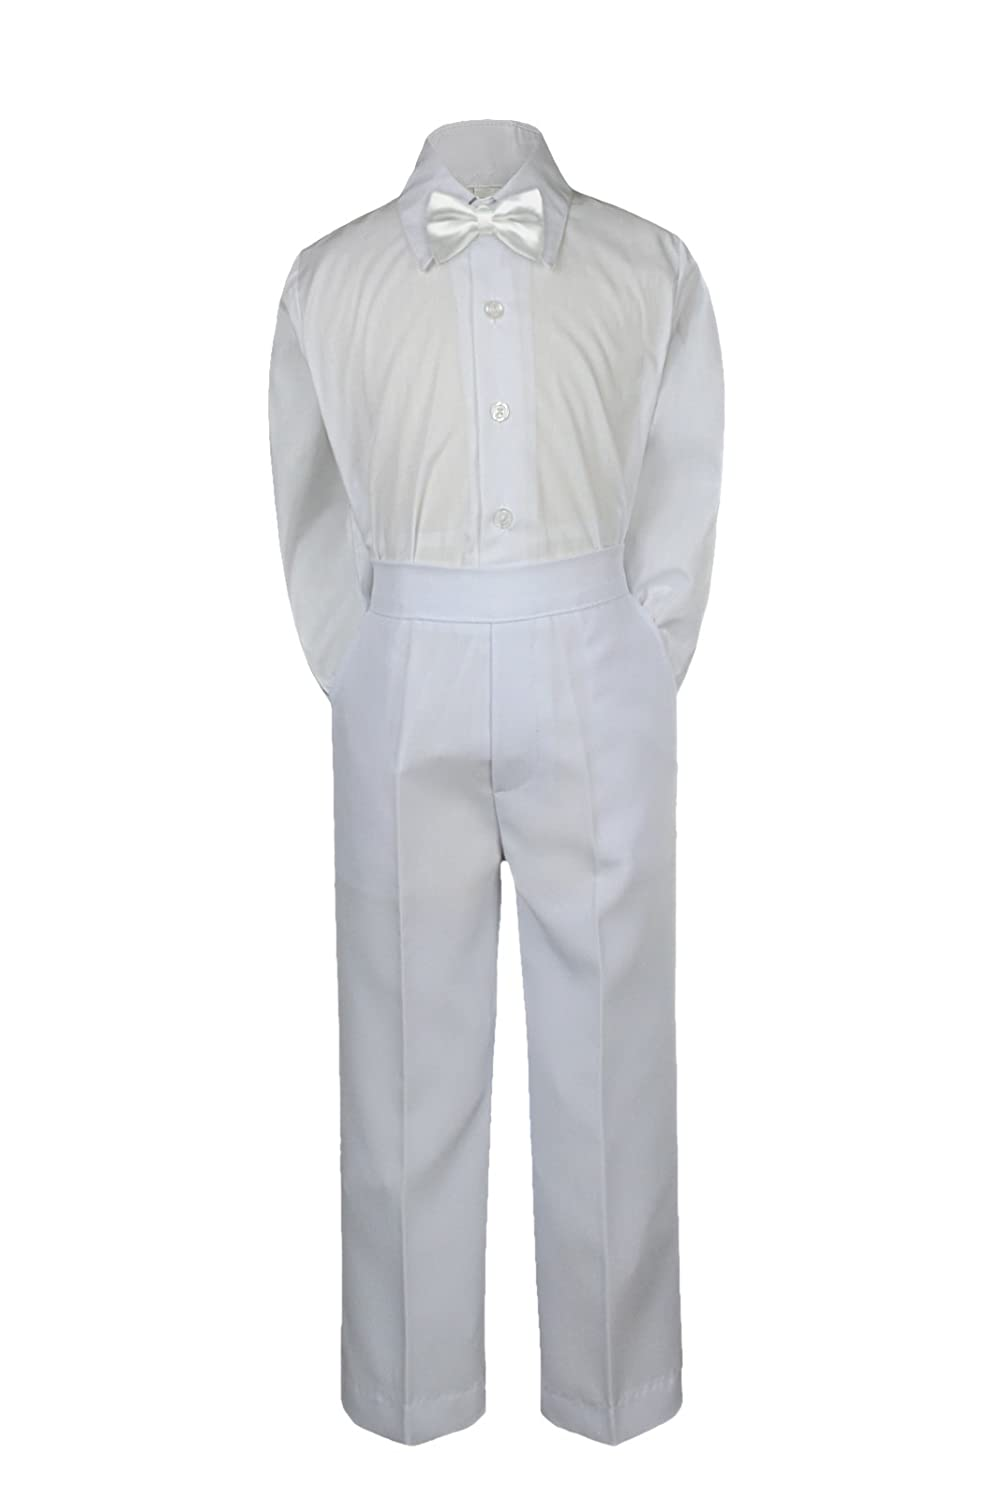 Leadertux 3pc Formal Baby Toddler Boys Satin White Bow Tie White Pants Suits S-7 6